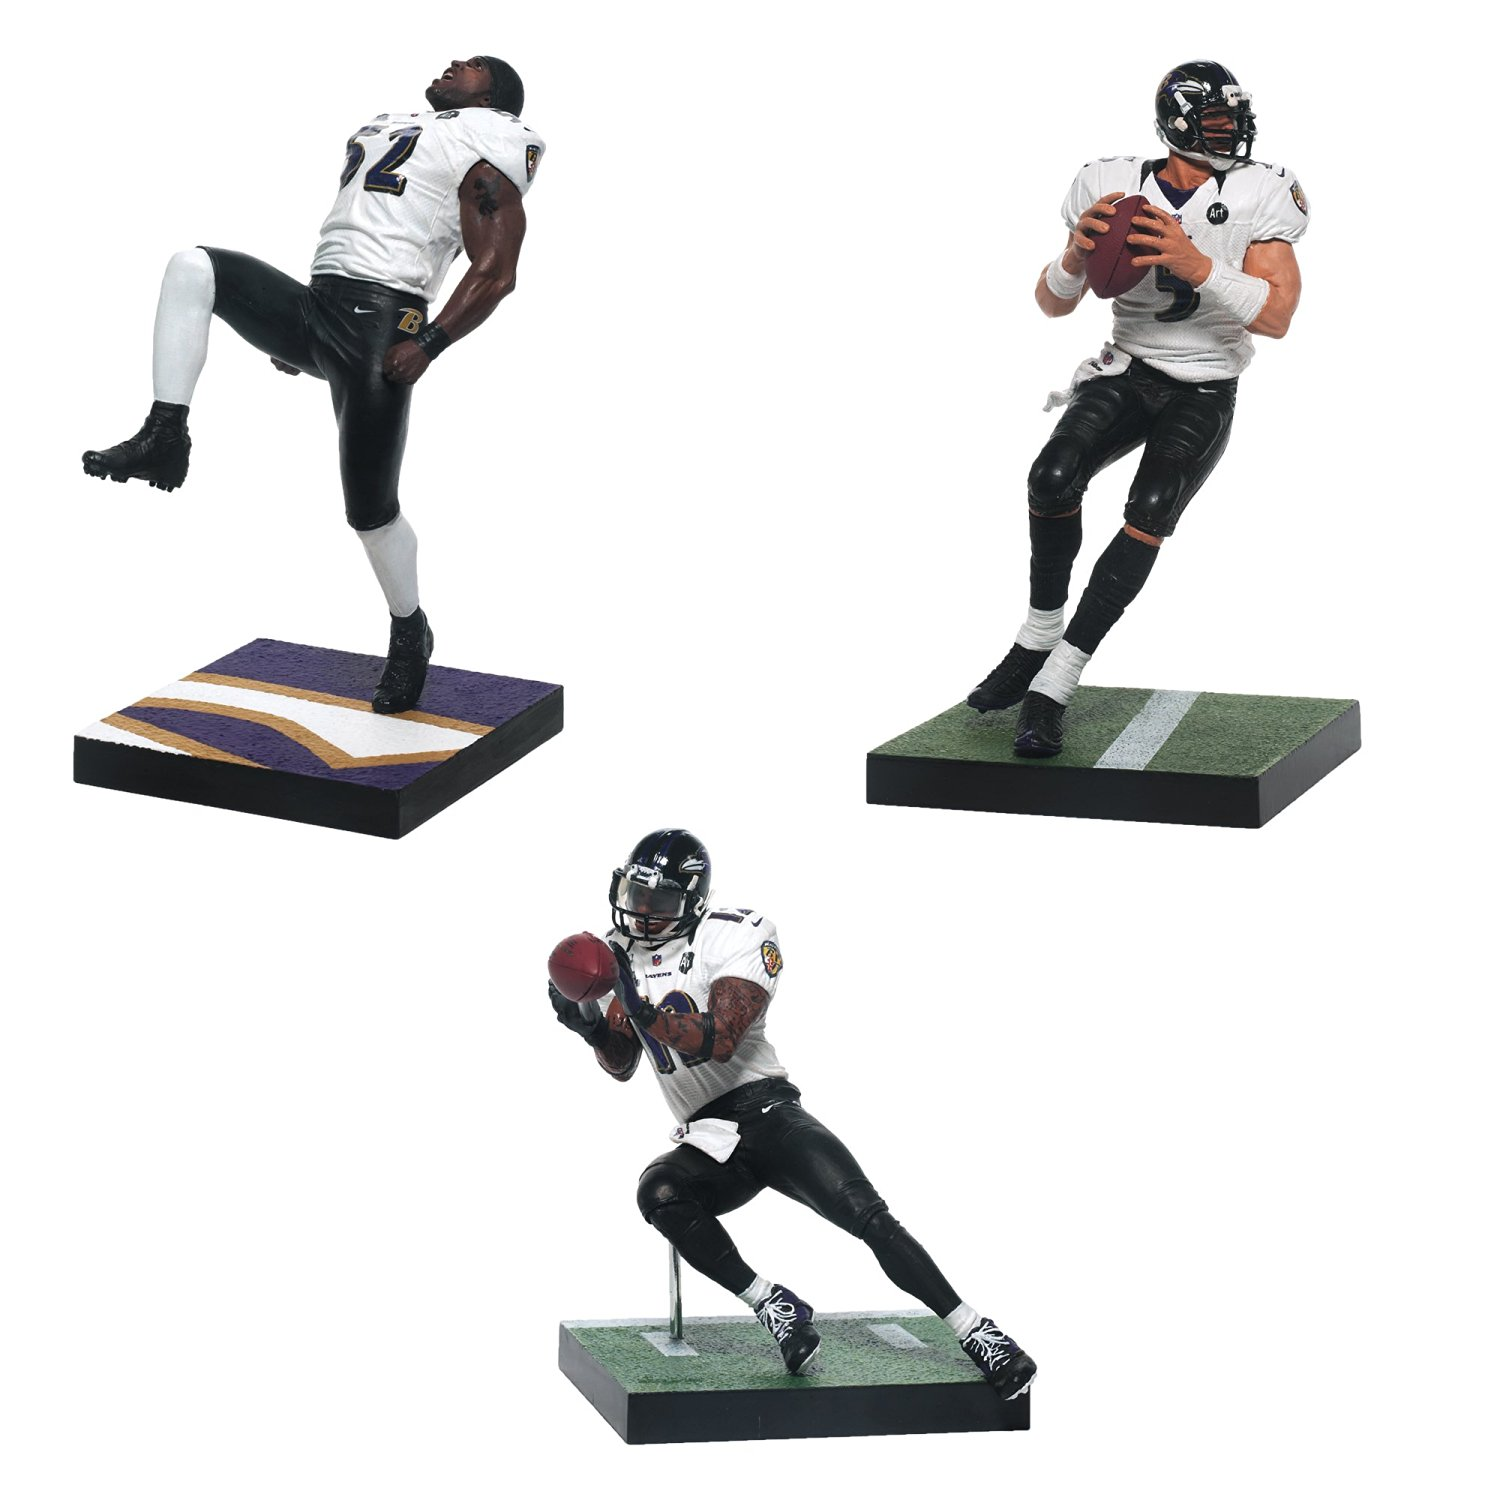 McFarlane Toys Baltimore Ravens NFL Super Bowl Action Figure, 3-Pack